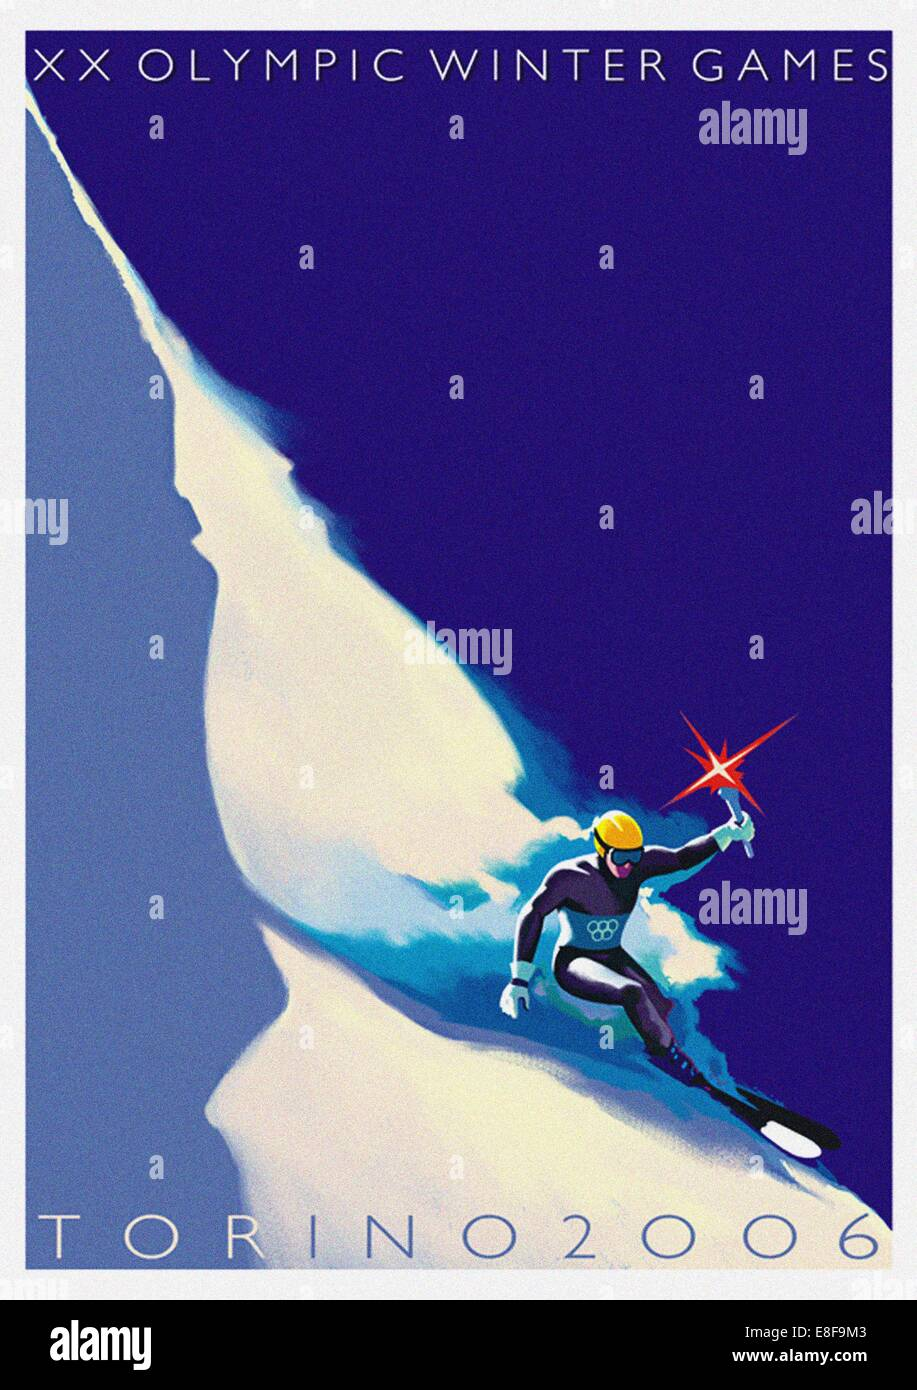 Official poster for the XX Olympic Winter Games 2006 in Turin. Artist: Riboli, Stefano - Stock Image